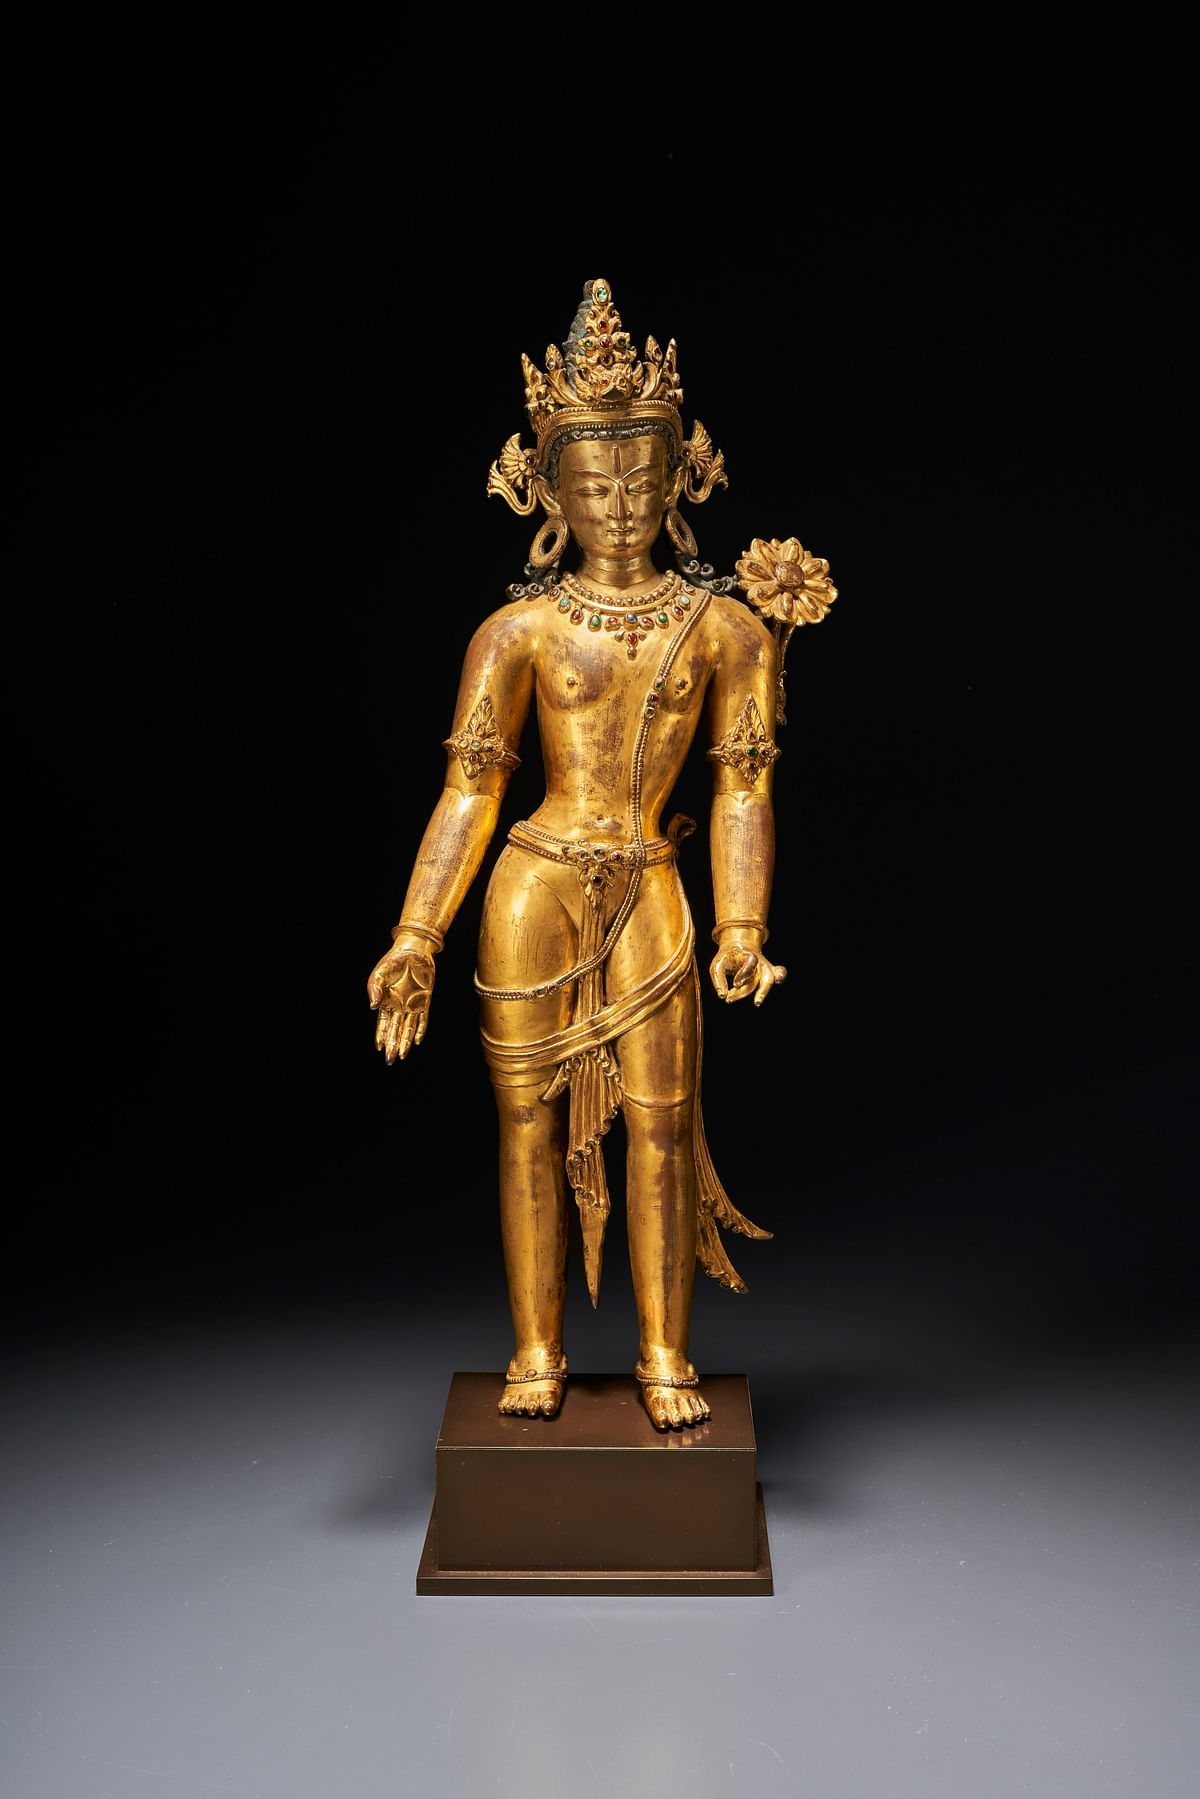 Property from a private American collection - An important gilt-copper figure of Padmapani Lokeshvara, Nepal, 13th Century